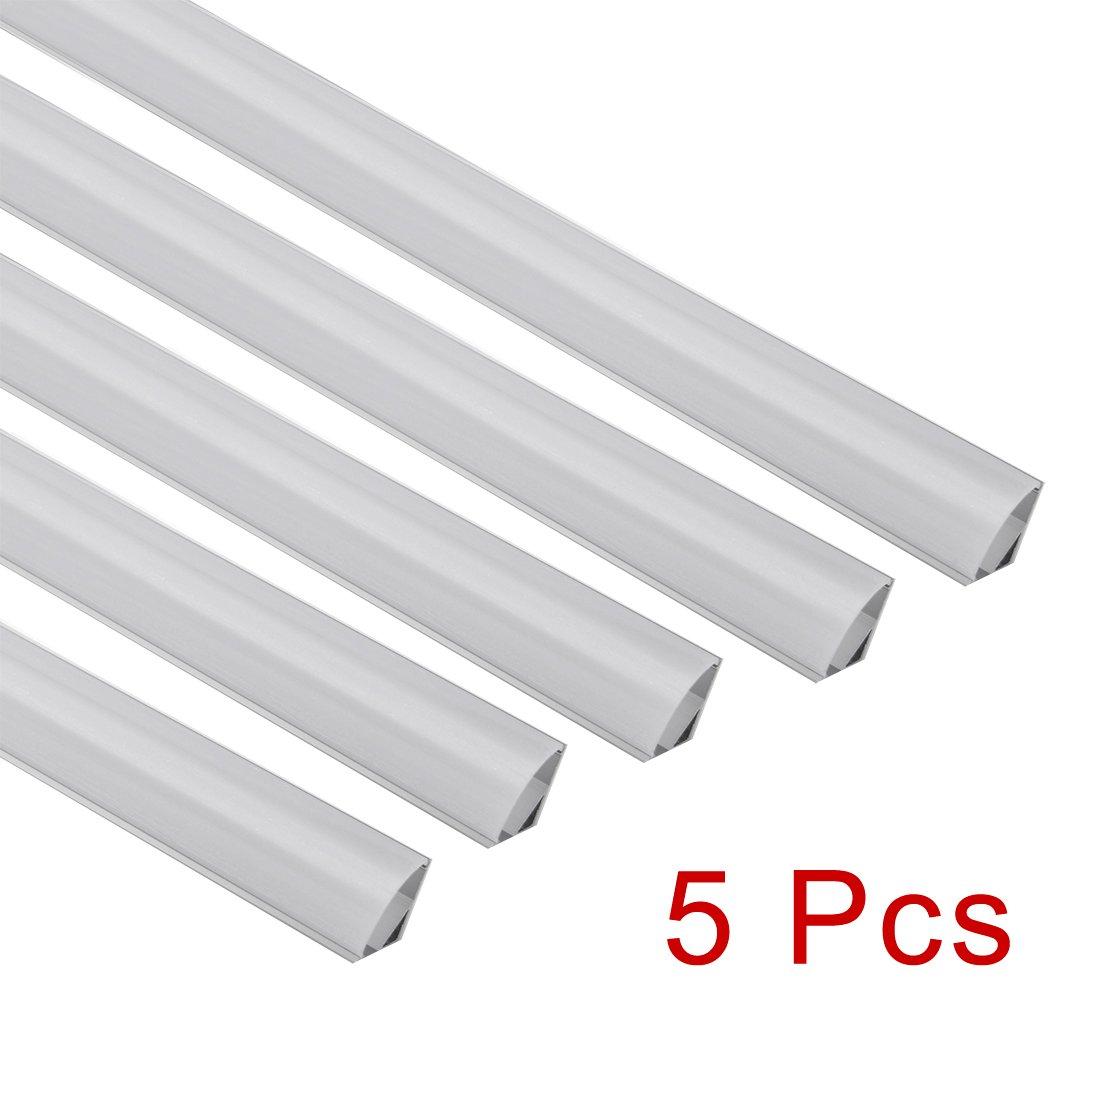 - 5 Packs a17042700ux0863 CN610, 0.5mx15.55mmx5.9mm uxcell Aluminum LED Channel 0.5Meter//1.64ft Led Channels and Milky Covers with End Caps and Mounting Clips for LED Flexible Light Strip Mounting